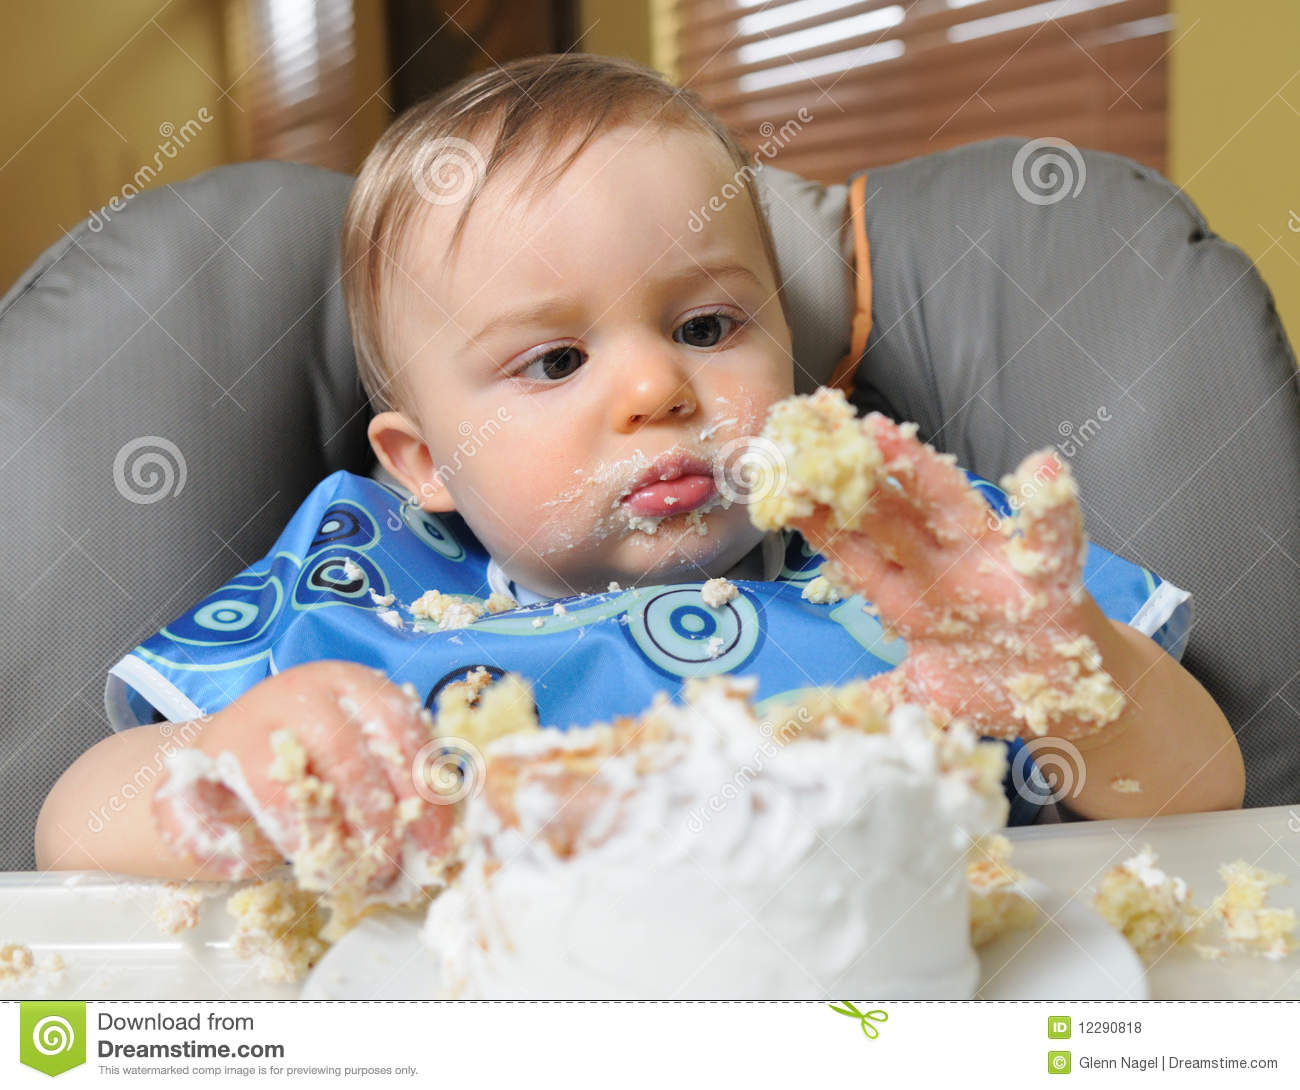 Images Baby Eating Birthday Cake : Baby Boy Makes Mess Of Cake Royalty Free Stock Photos ...